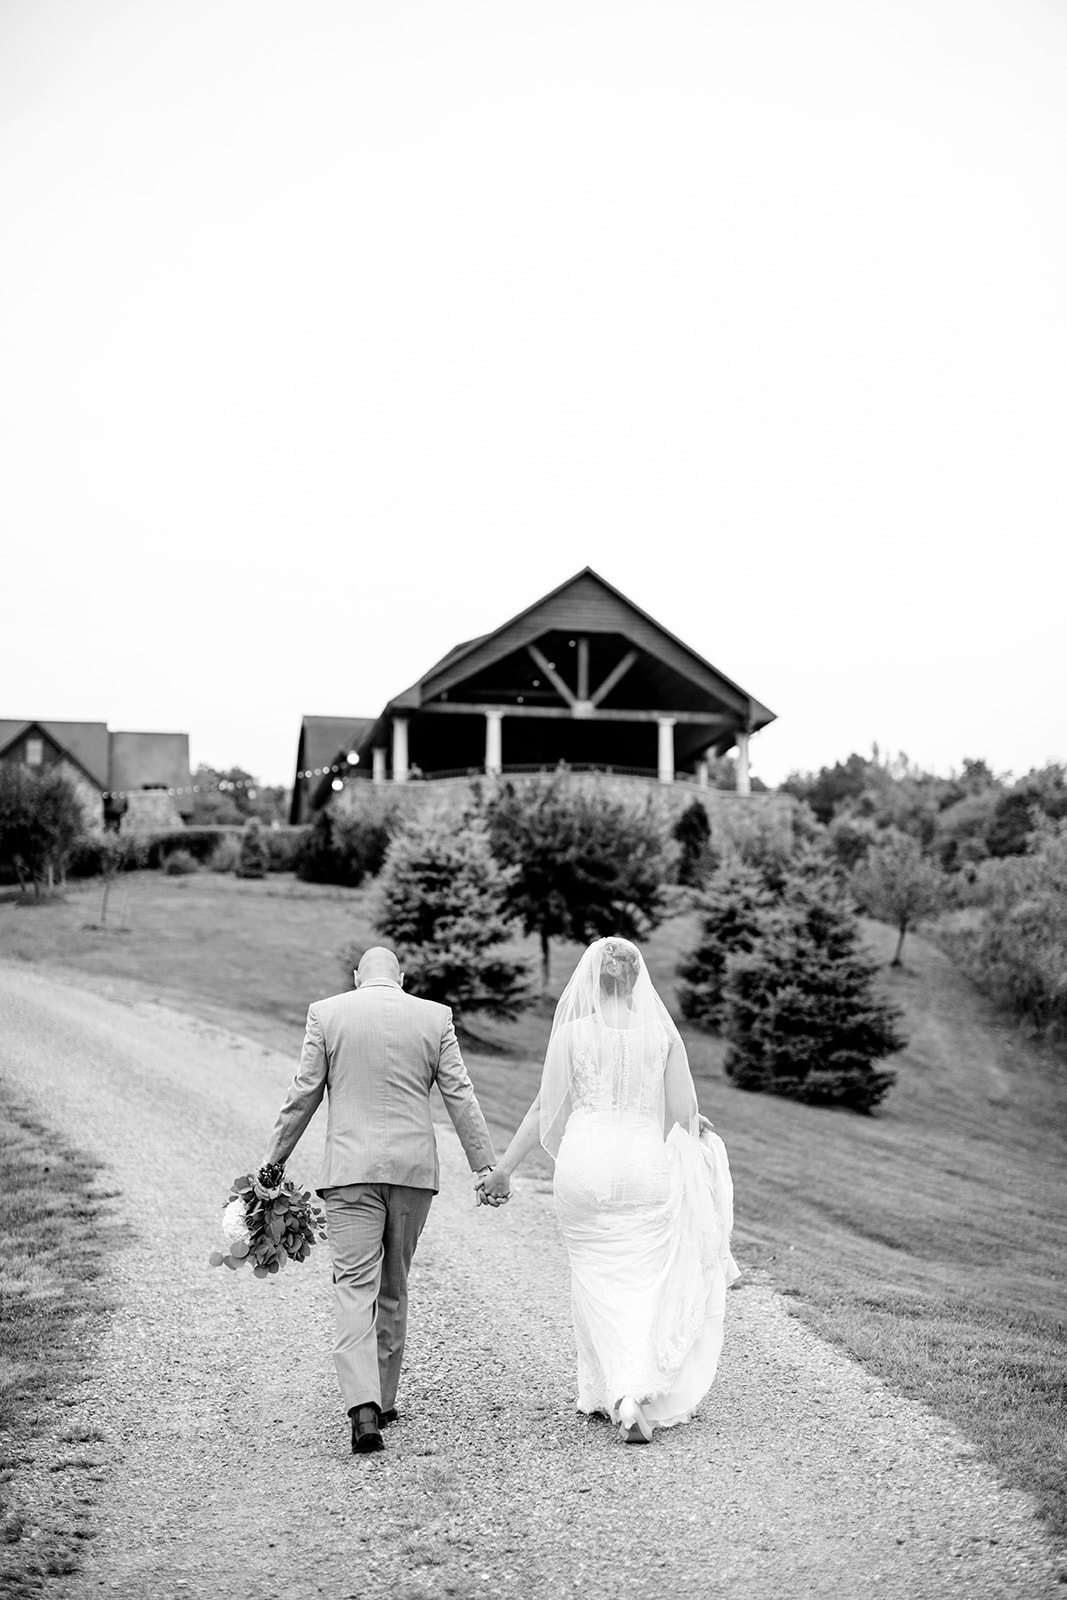 Morgan  Davids Wedding at House Mountain Inn - Image Property of www.j-dphoto.com